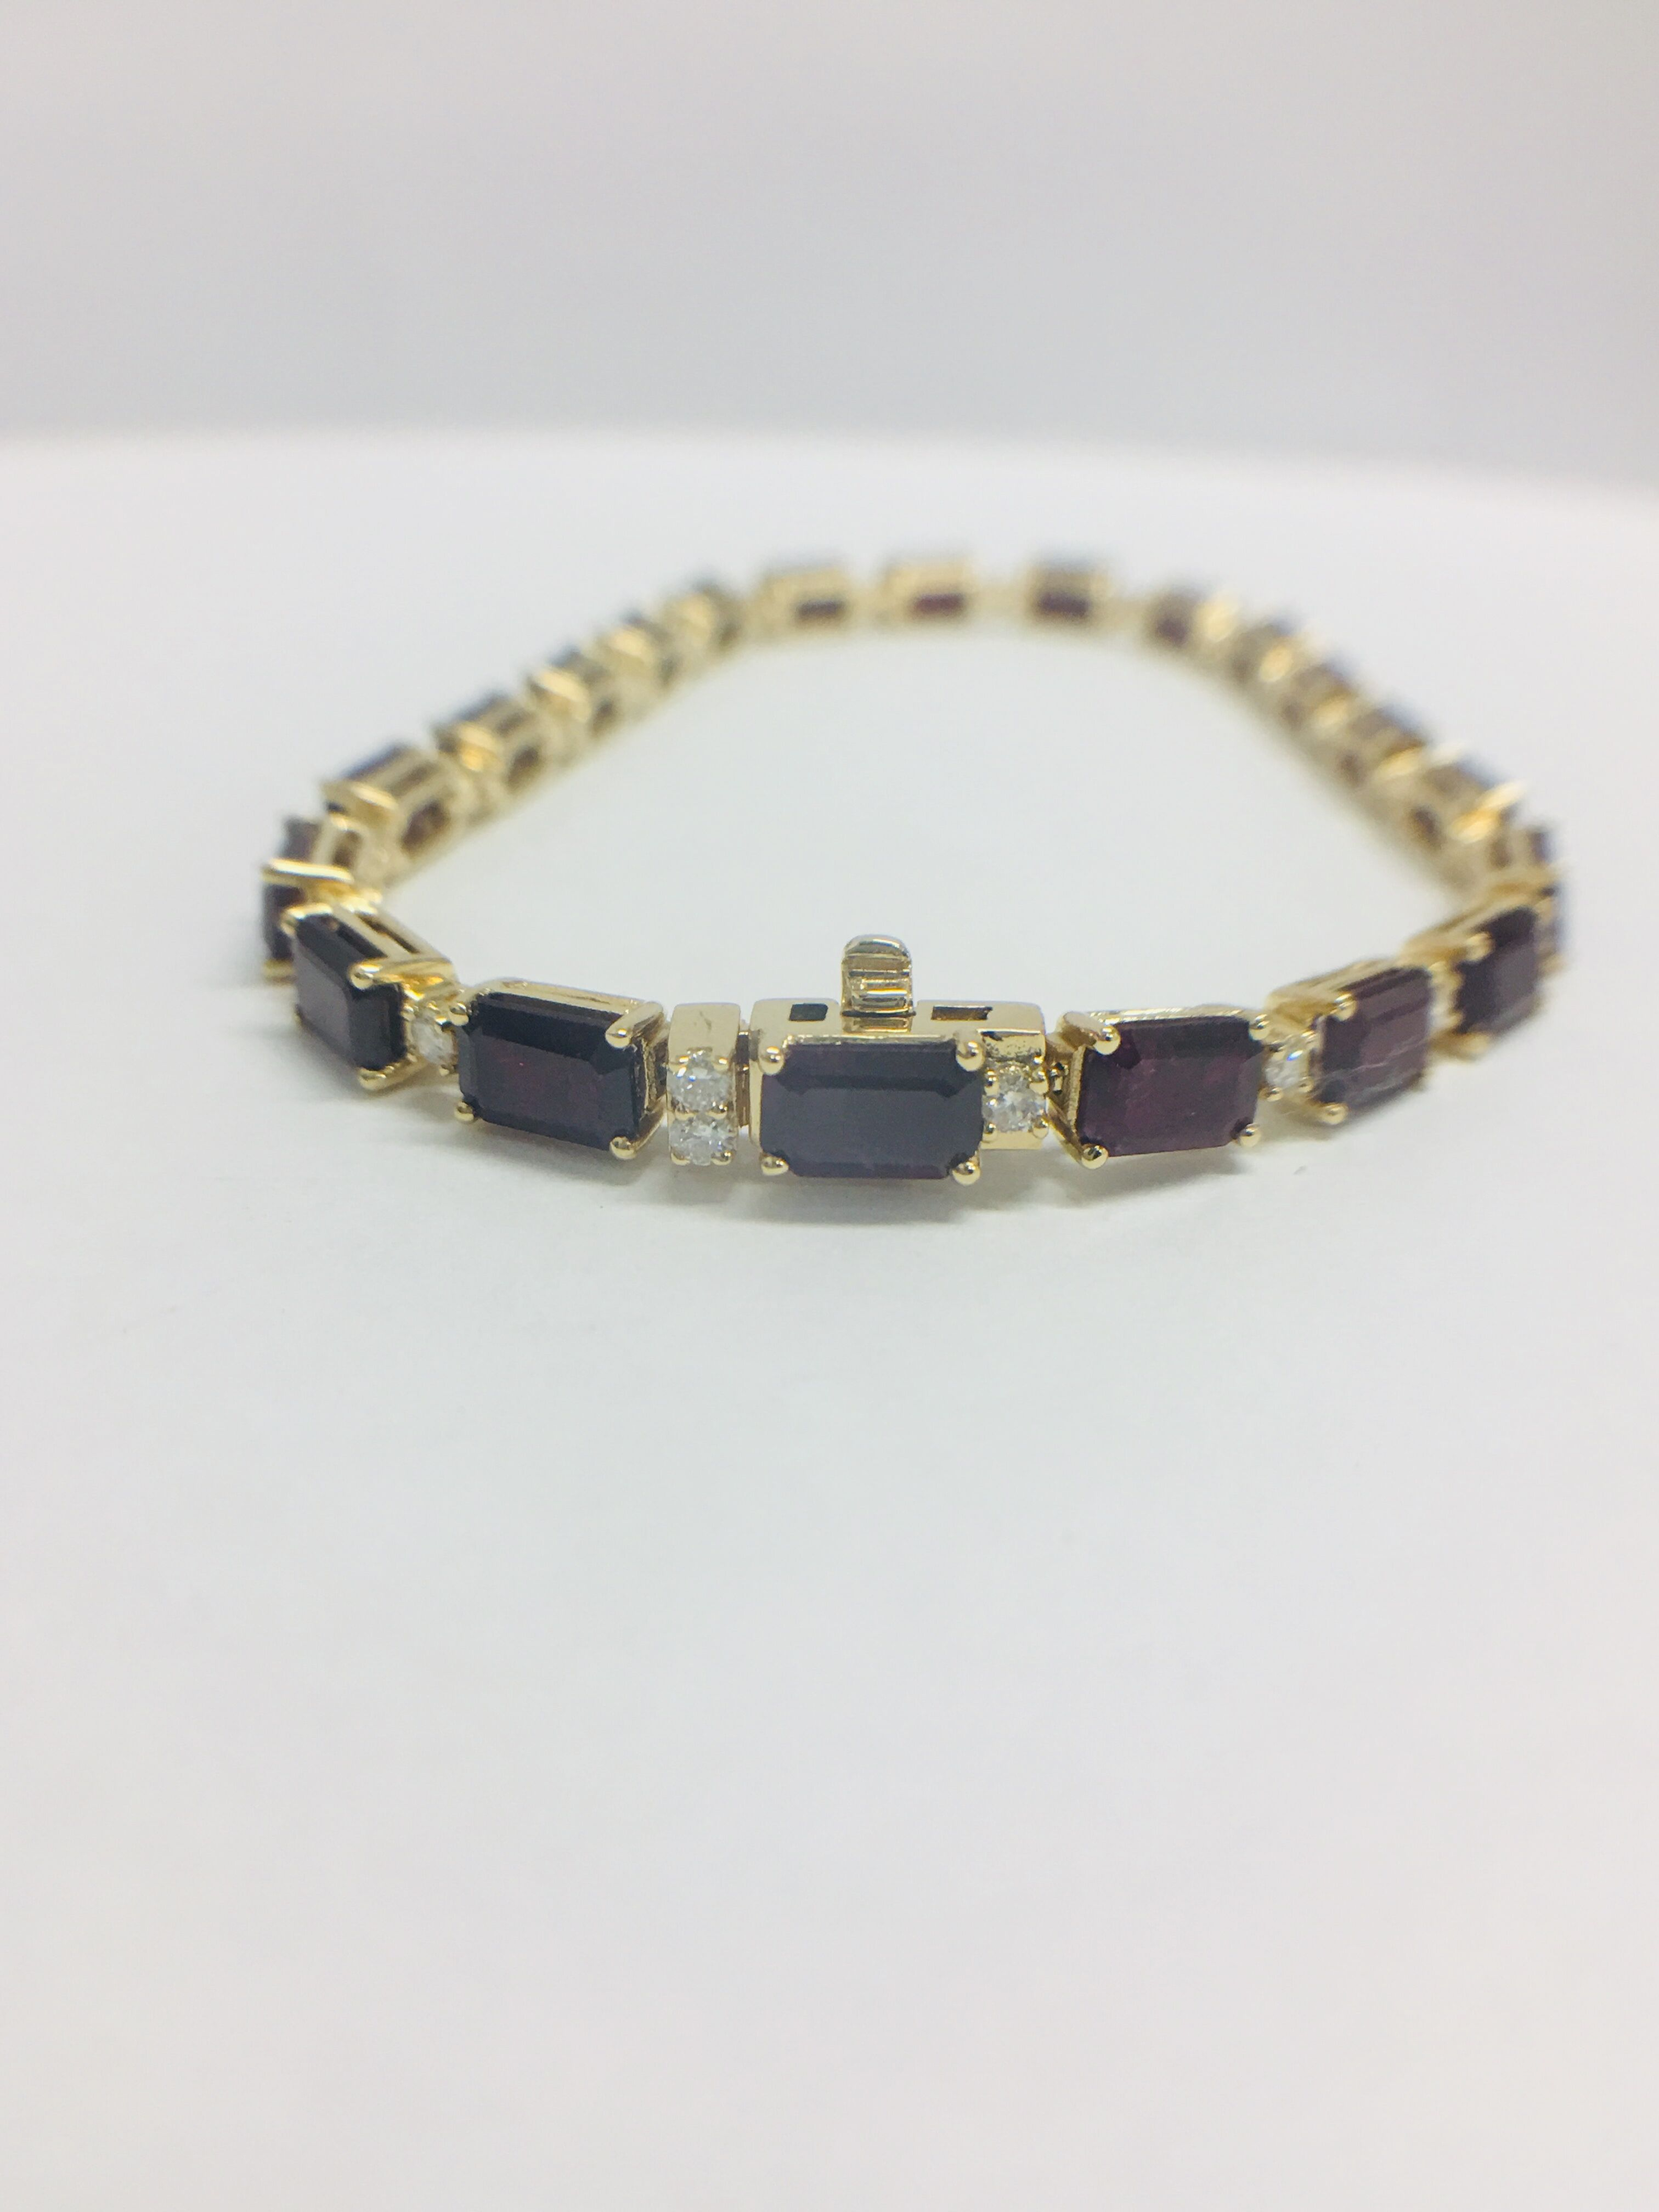 18ct yellow gold ruby and diamond tennis bracelet - Image 3 of 10